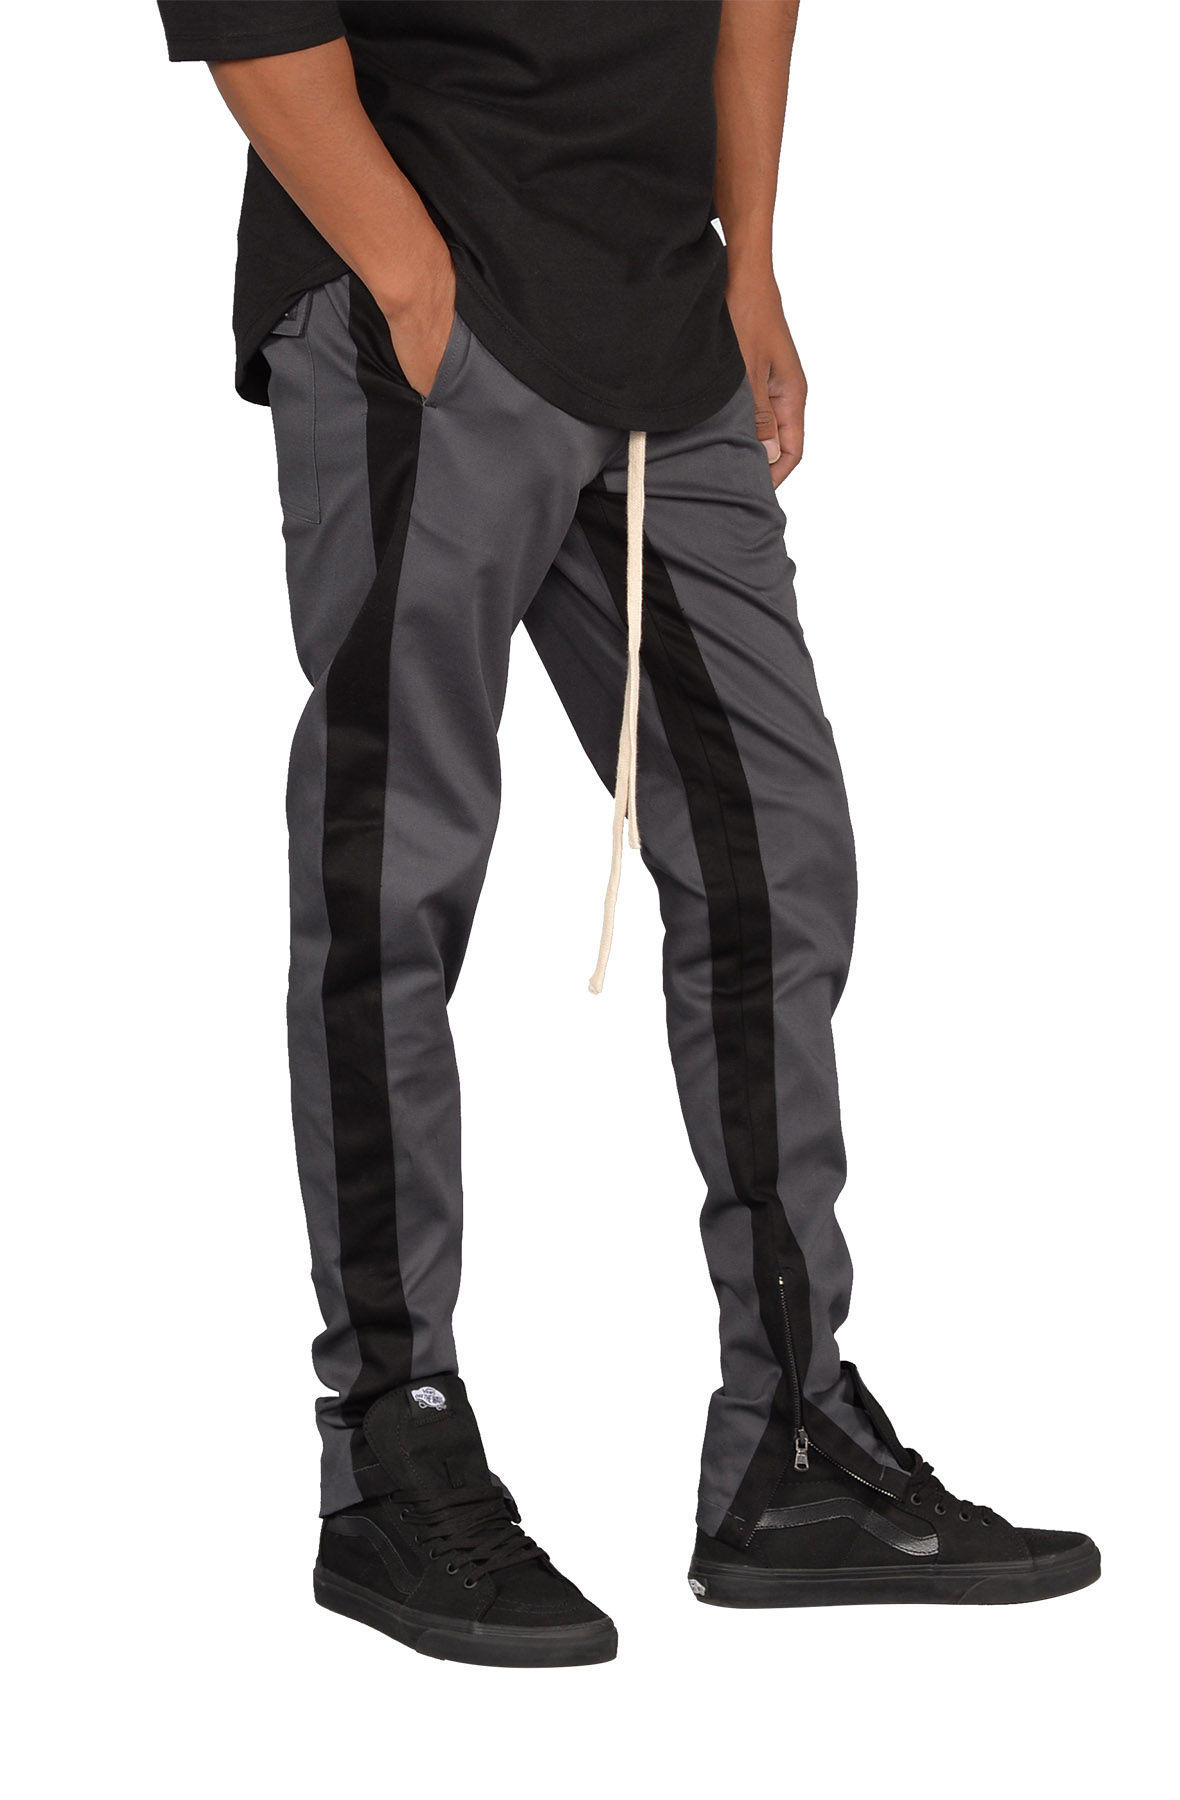 Striped Track Pants w/ Ankle Zip in Charcoal & Black